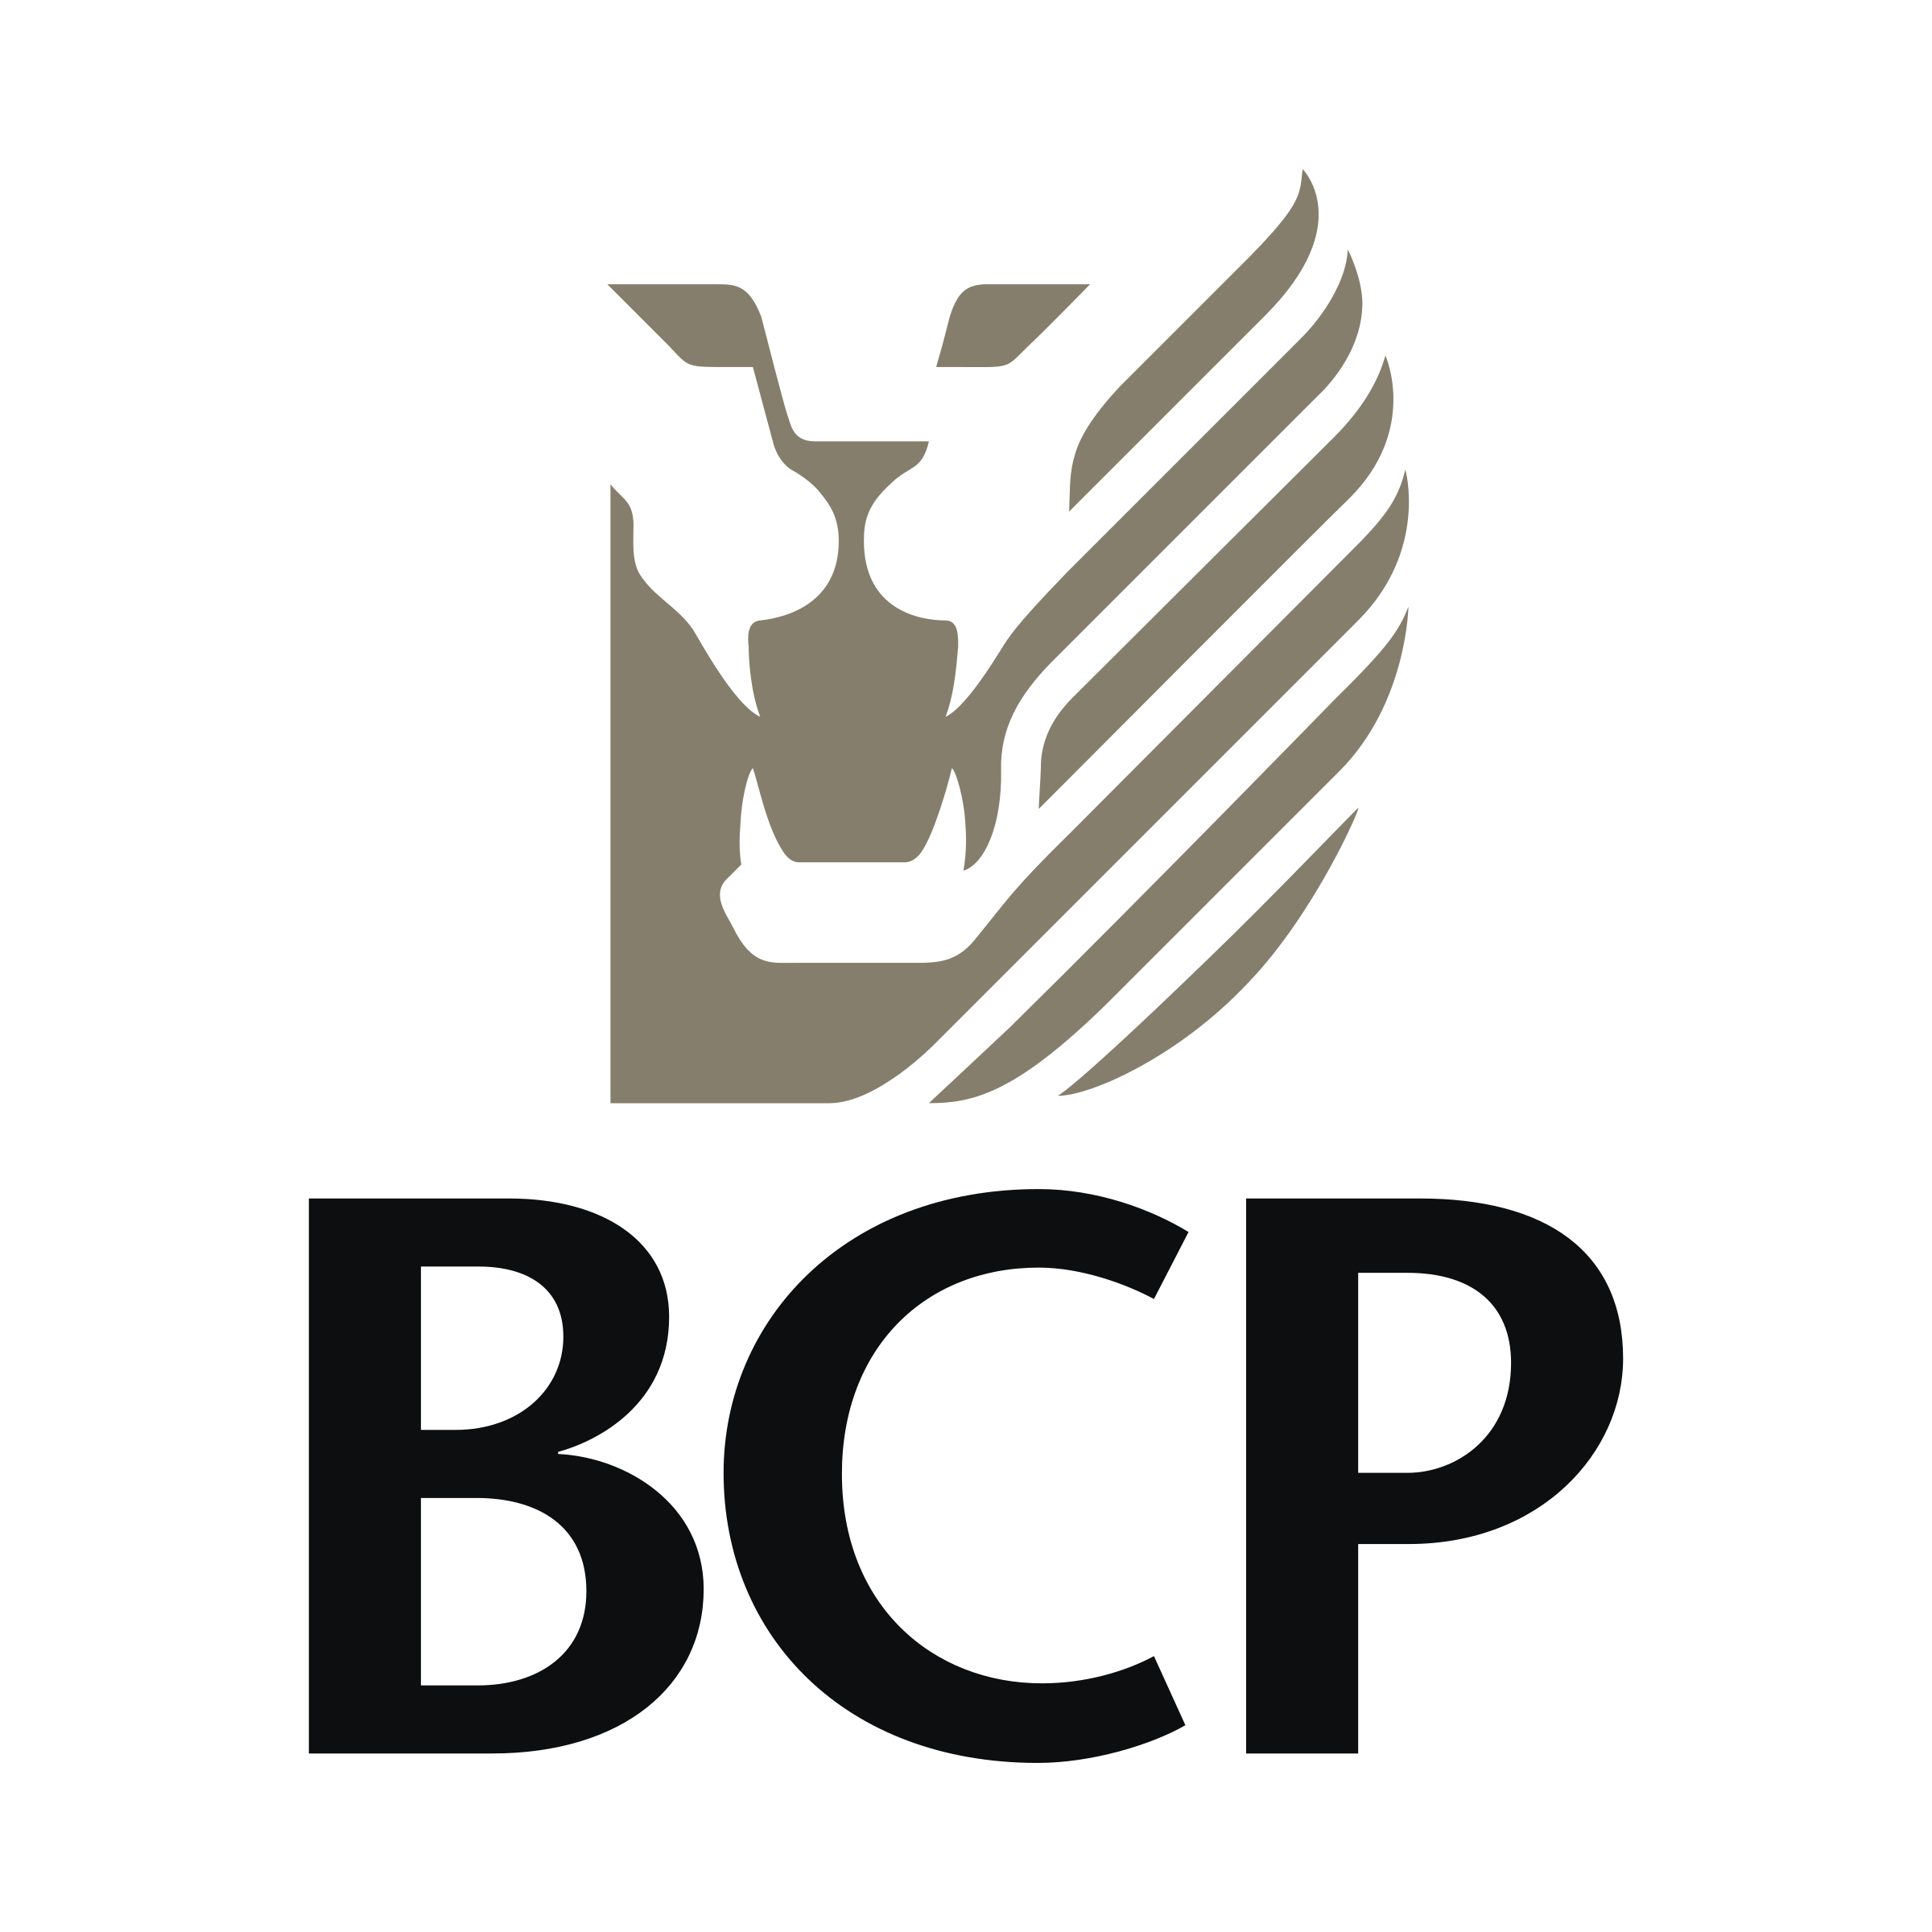 BCP Logo PNG Transparent & SVG Vector.